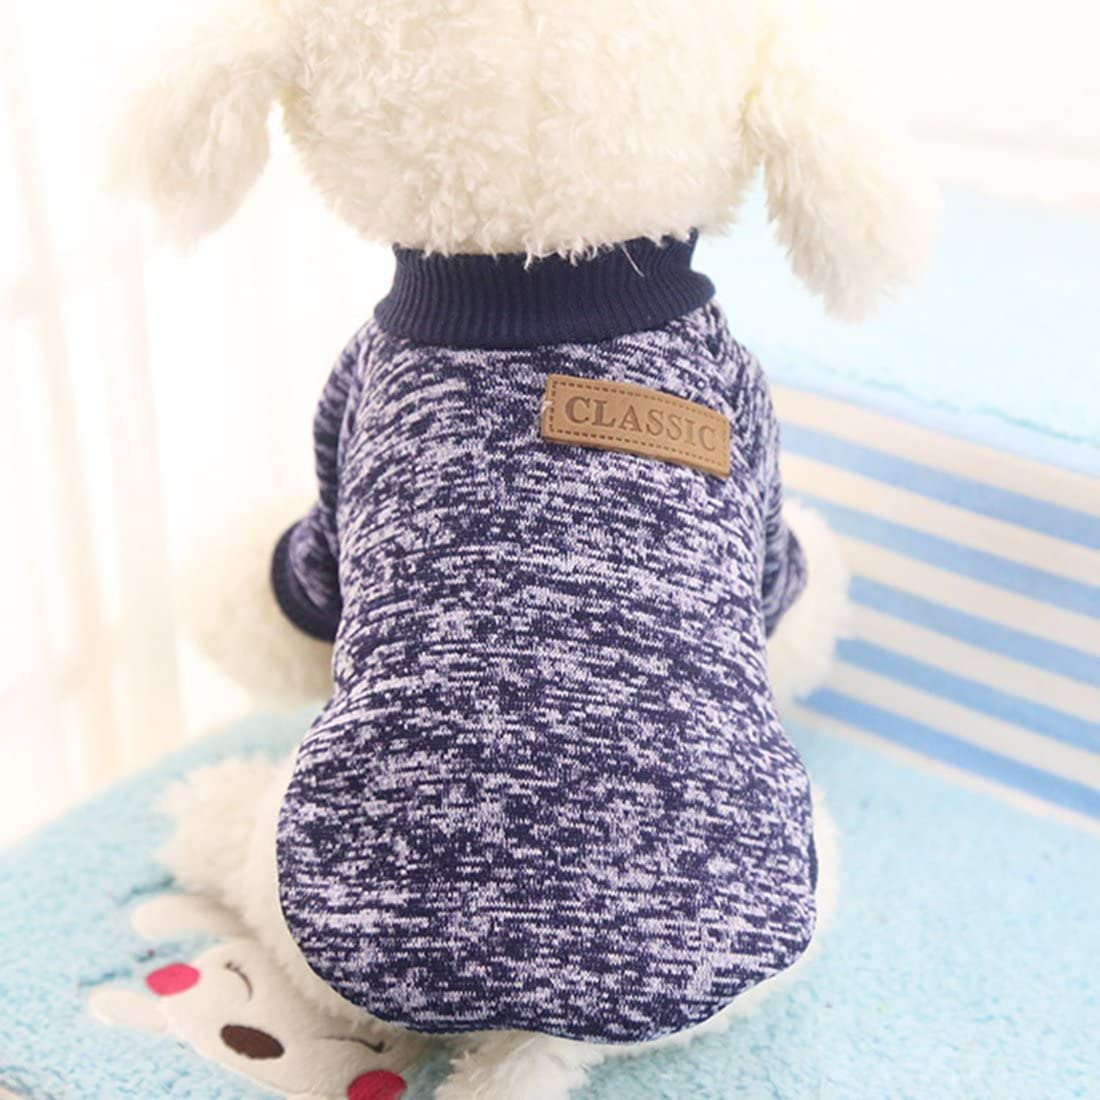 Idepet Pet Dog Classic Knitwear Sweater Fleece Coat Soft Thickening Warm Pup Dogs Shirt Winter Pet Dog Cat Clothes Soft Puppy Customes Clothing for Small Dogs (Read The Size Chart First)